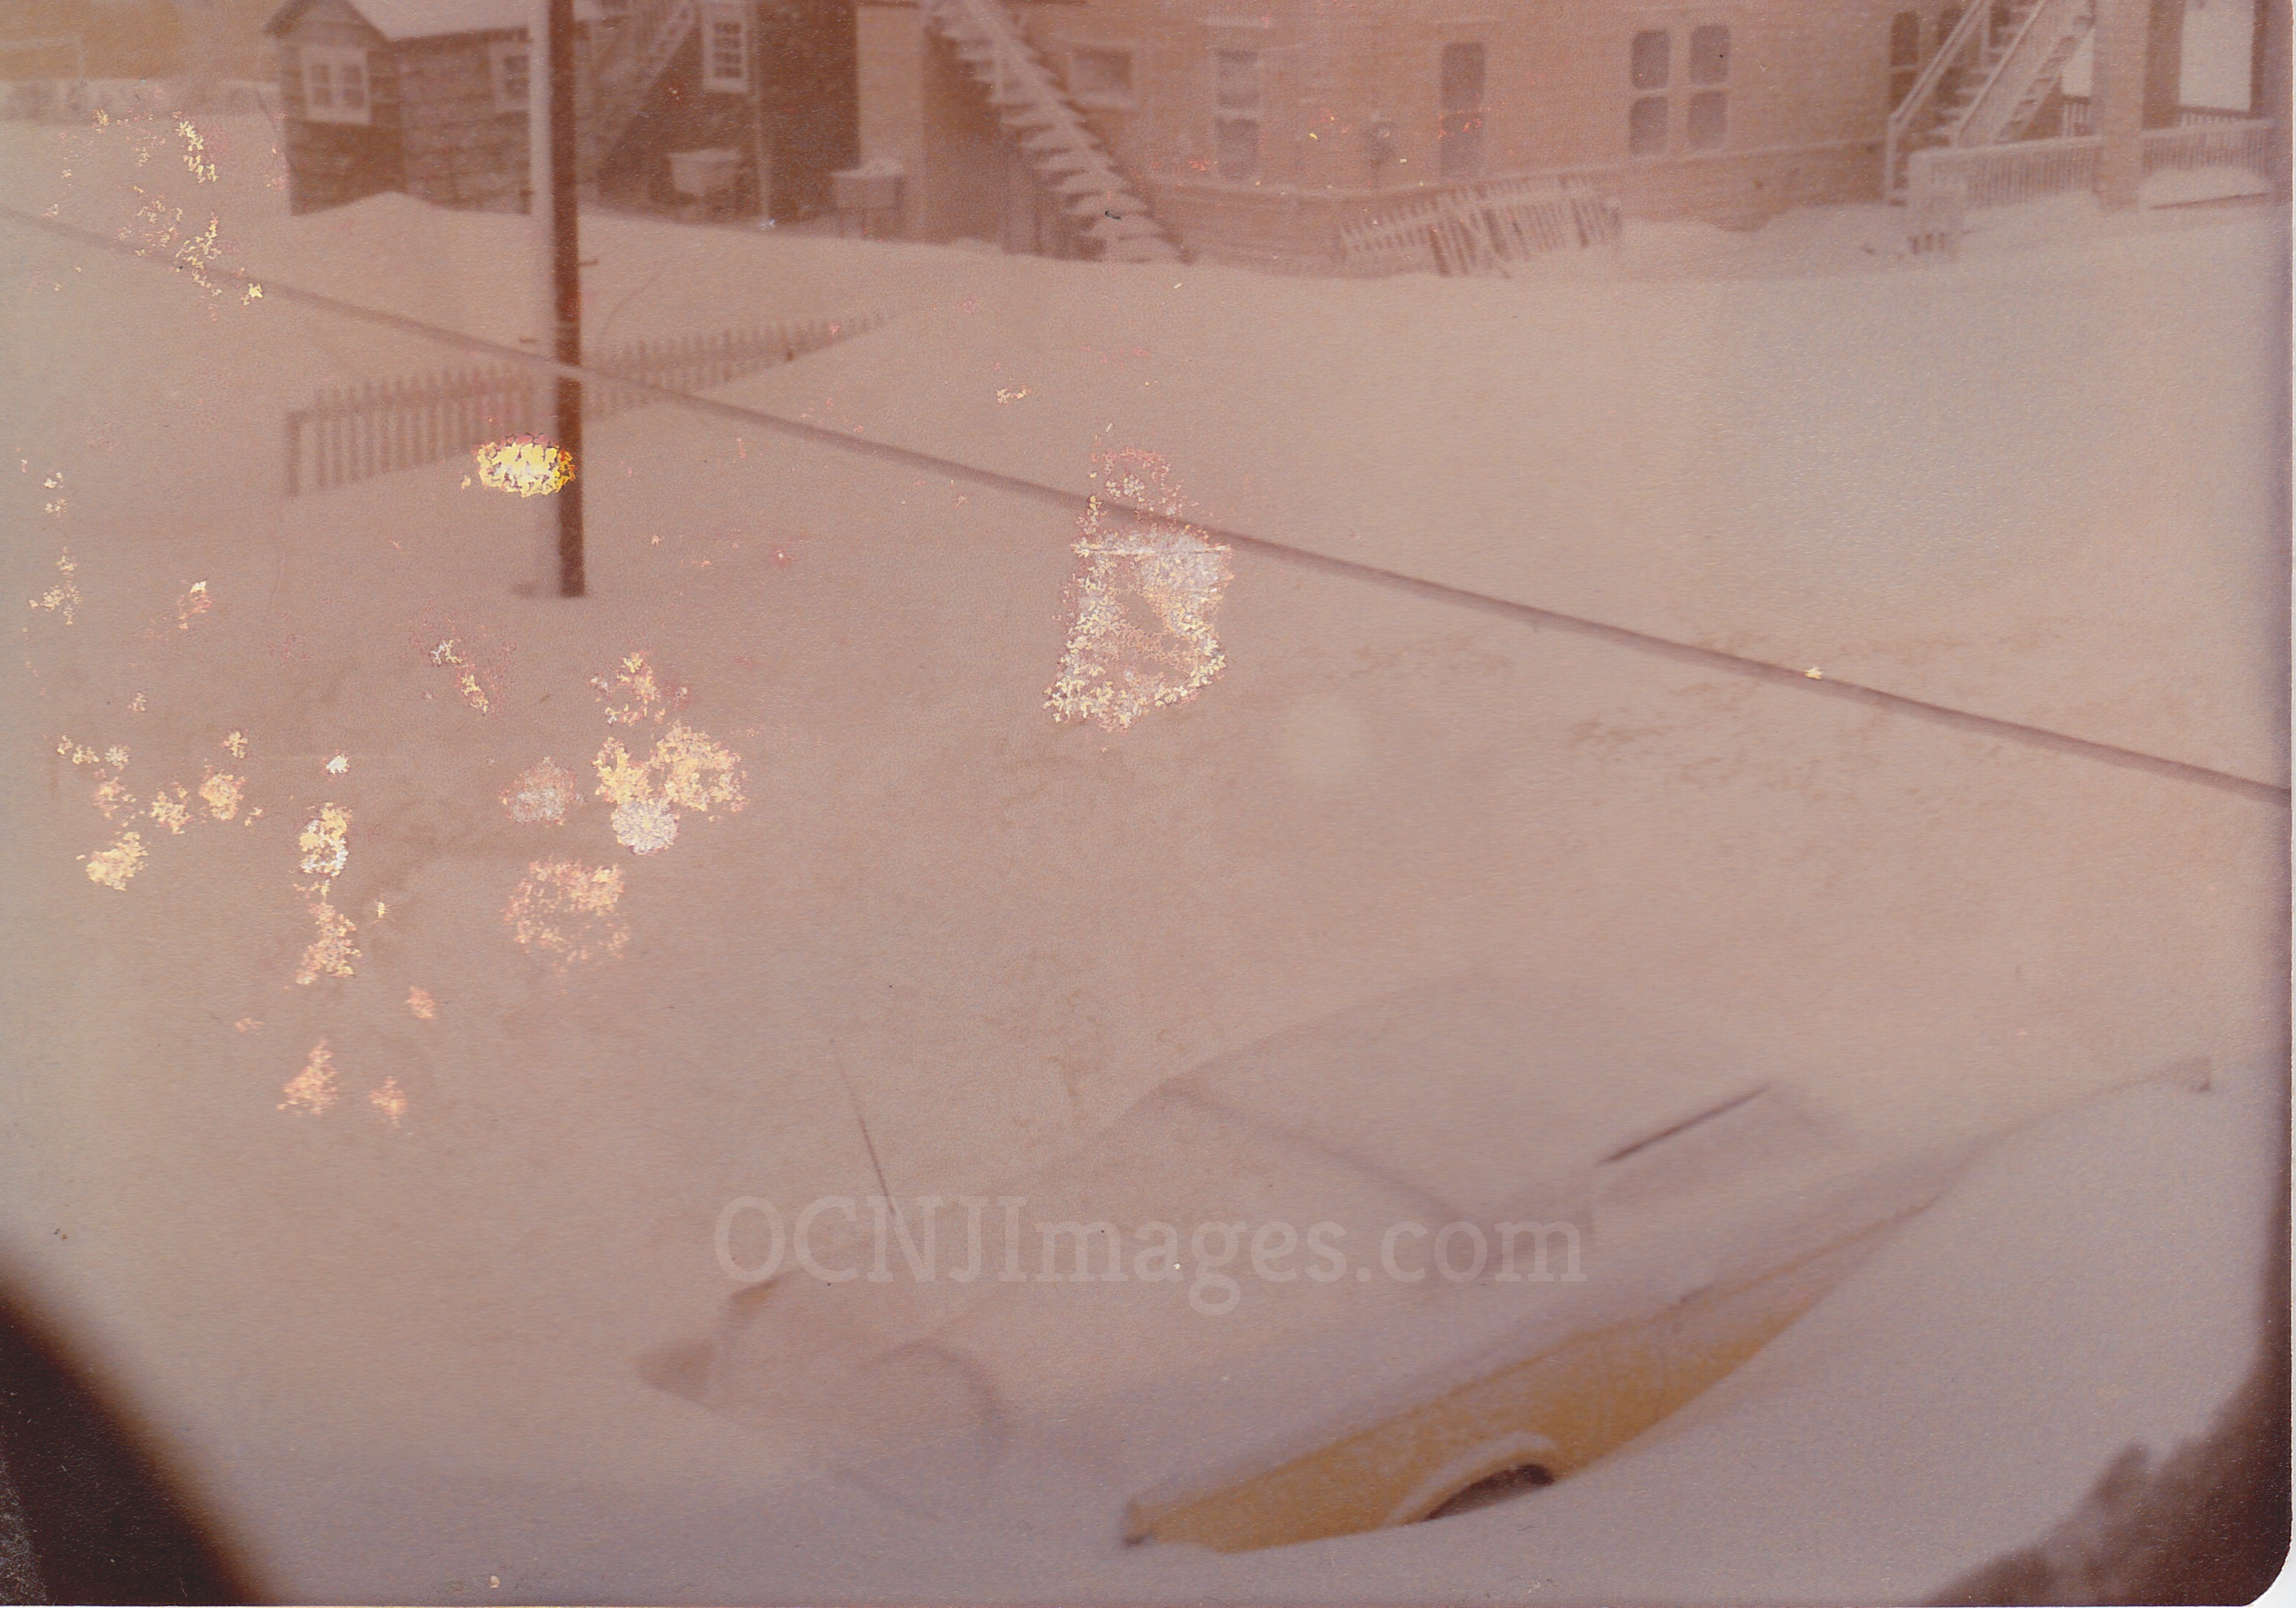 1978 Blizzard - February - In front of 104 Atlantic Ave